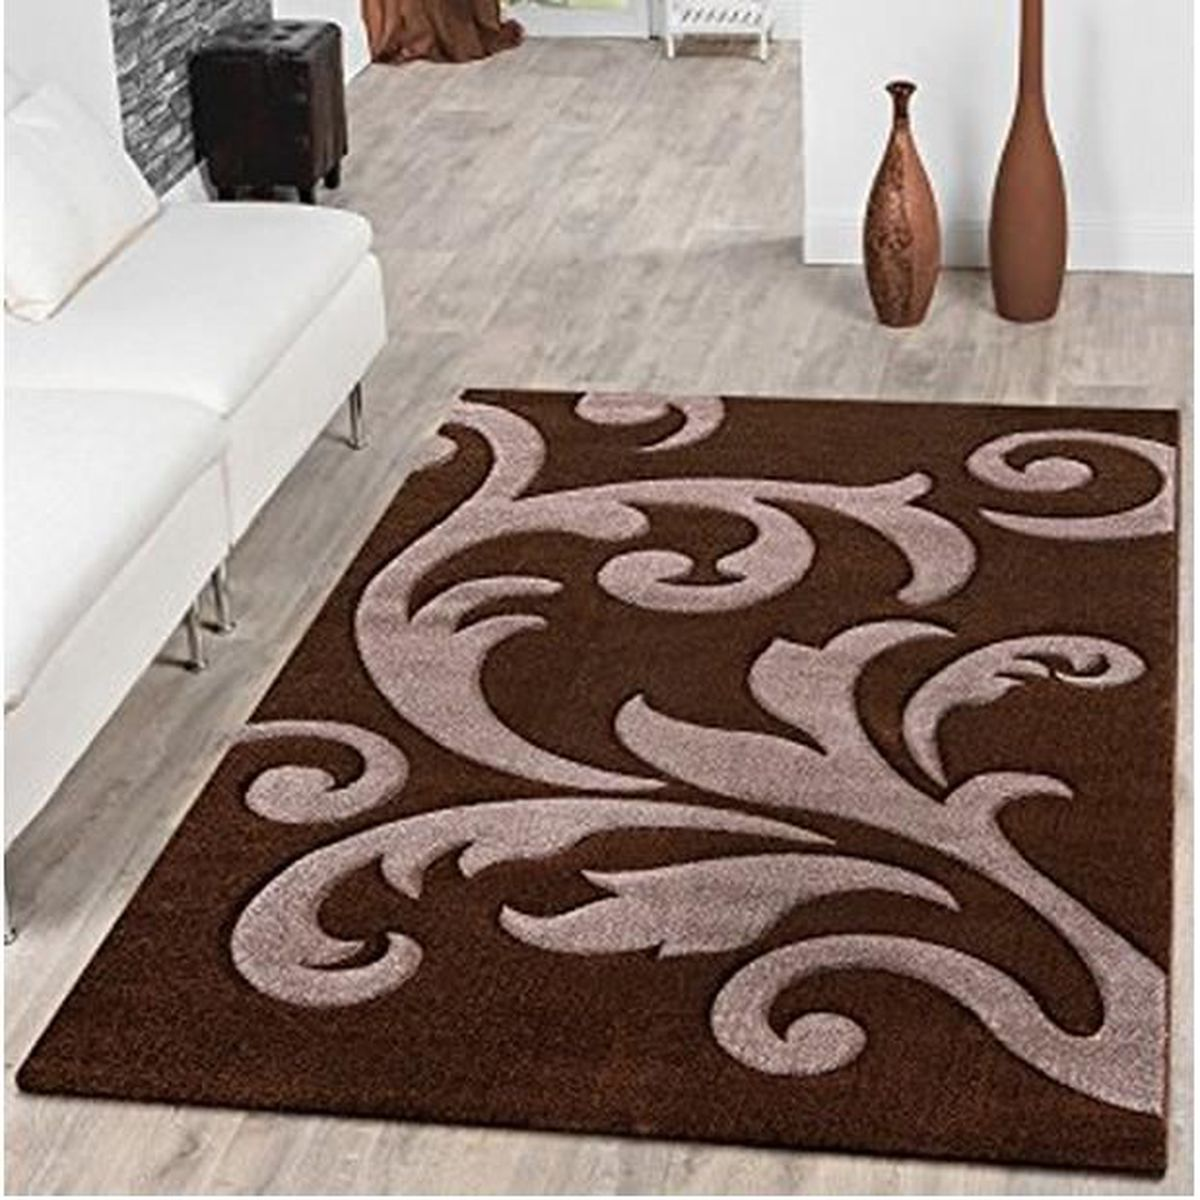 tapis salon tapis levante moderne avec motif floral marron beige 240 x 340 cm achat vente. Black Bedroom Furniture Sets. Home Design Ideas